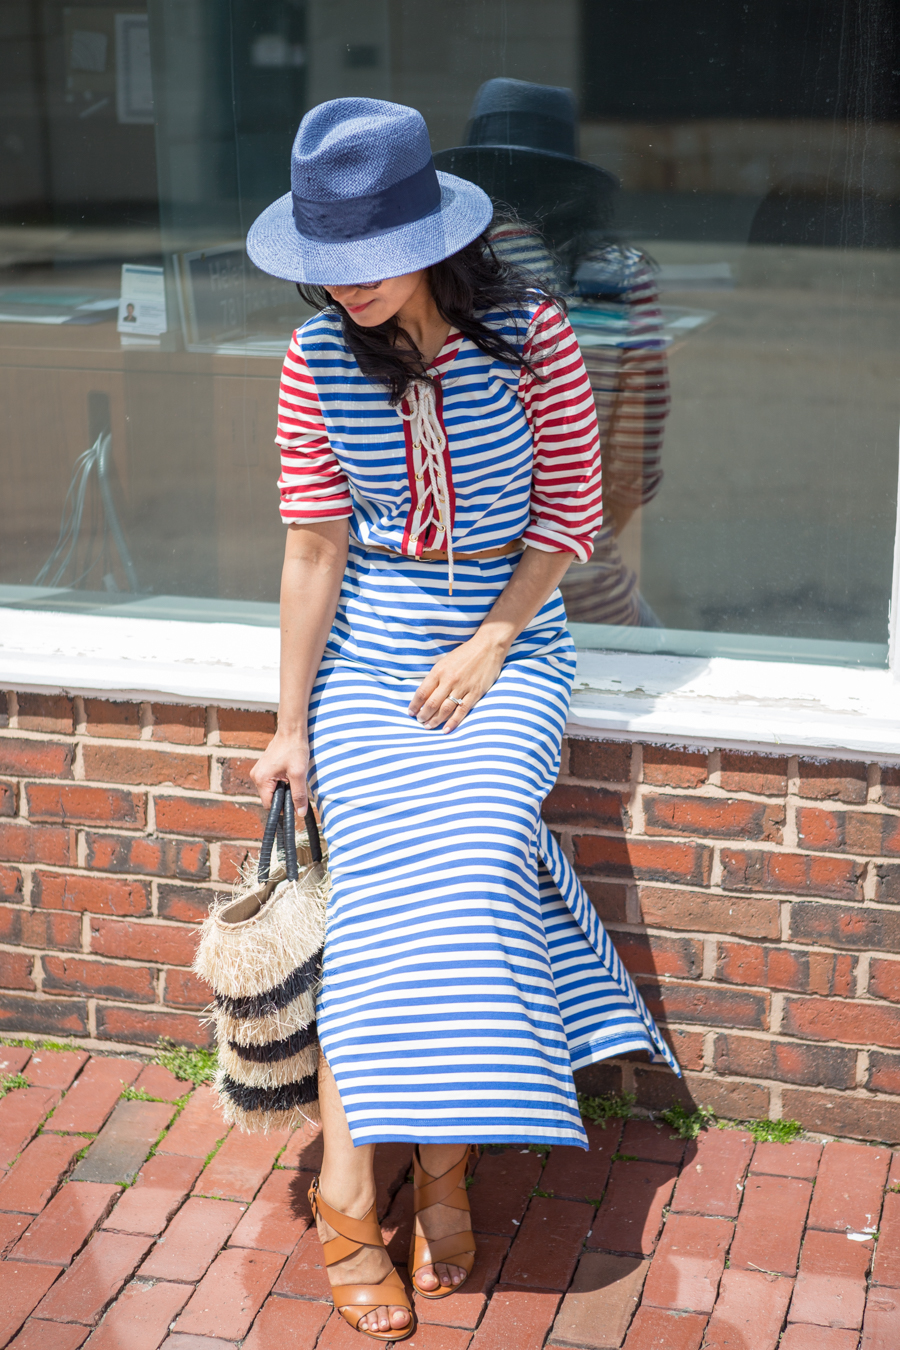 mother's day, style blog, petite fashion, stripes, preppy, j.crew, mommylife, motherhood, vacation style, banana republic, j.crew, nordstrom